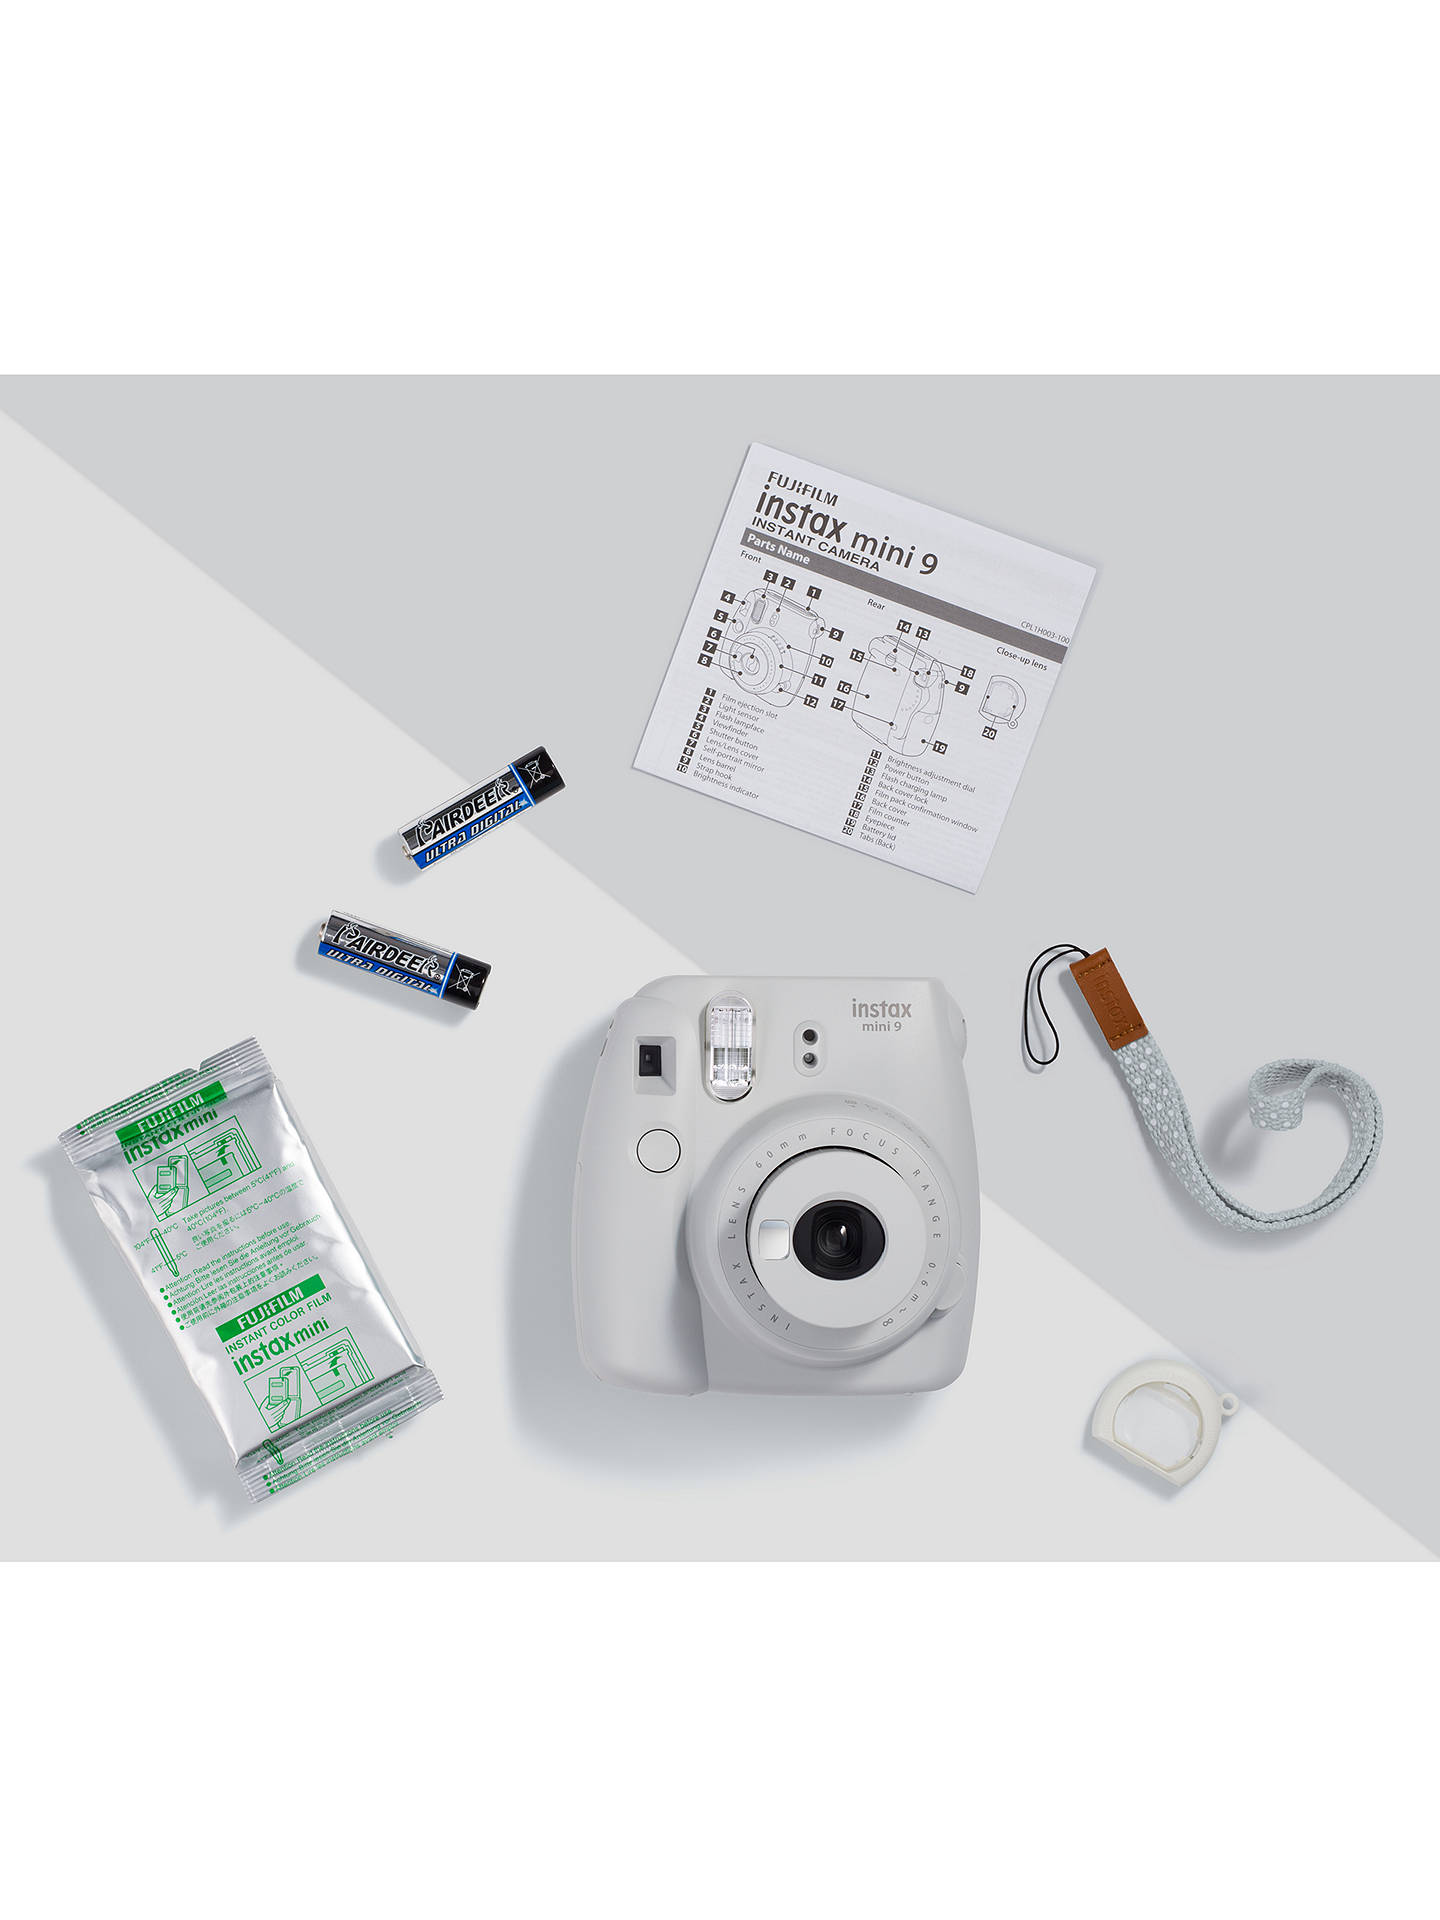 BuyFujifilm Instax Mini 9 Instant Camera with 10 Shots of Film, Built-In Flash & Hand Strap, Smoky White Online at johnlewis.com